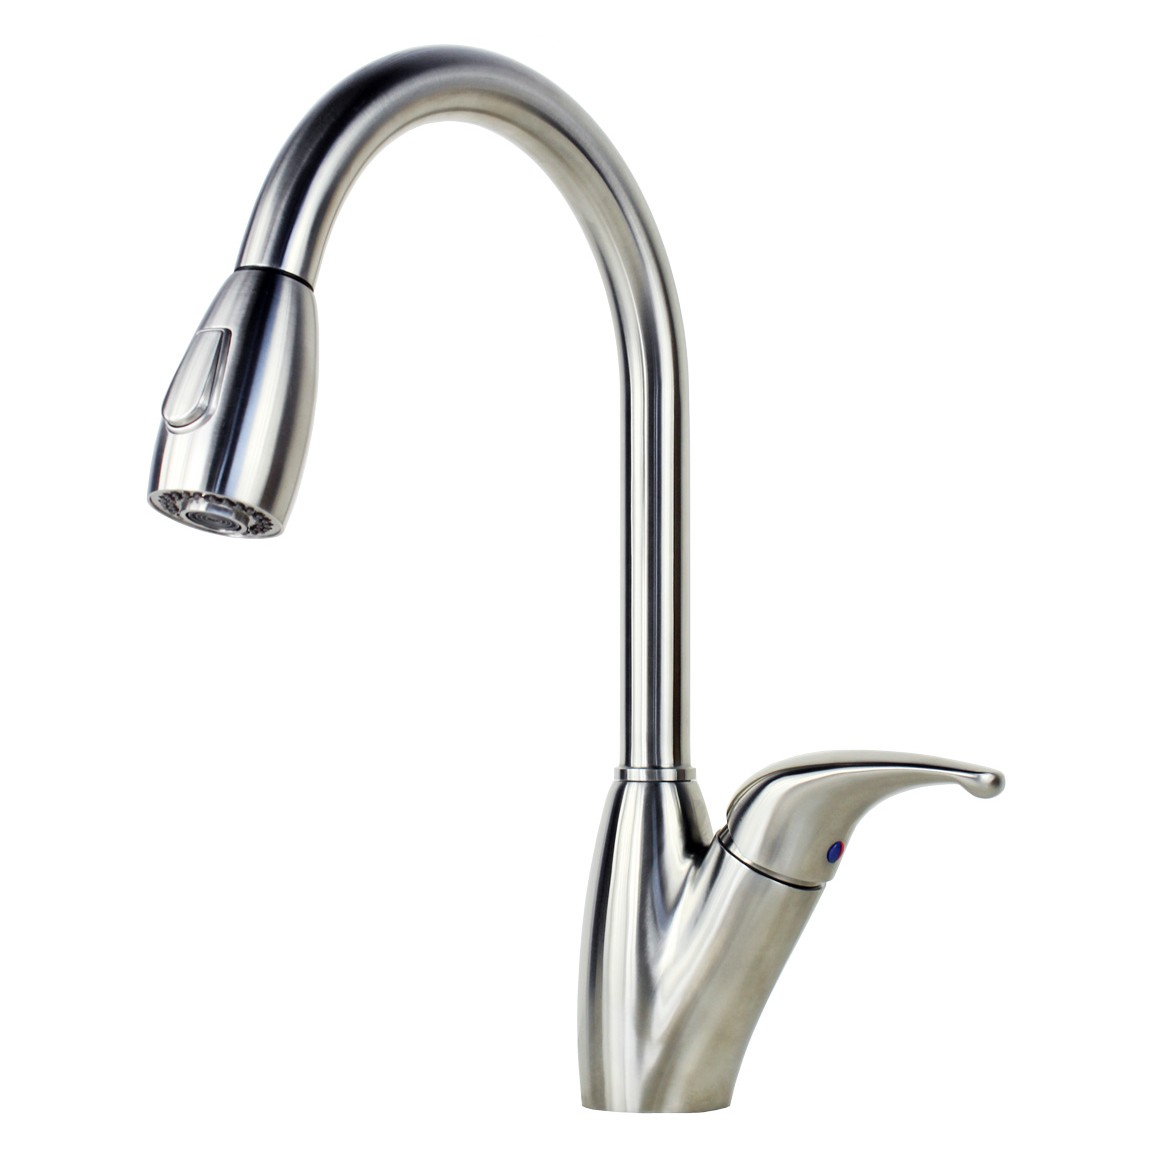 Ariel Tulip Stainless Steel Lead Free Pull Out Sprayer Kitchen Faucet